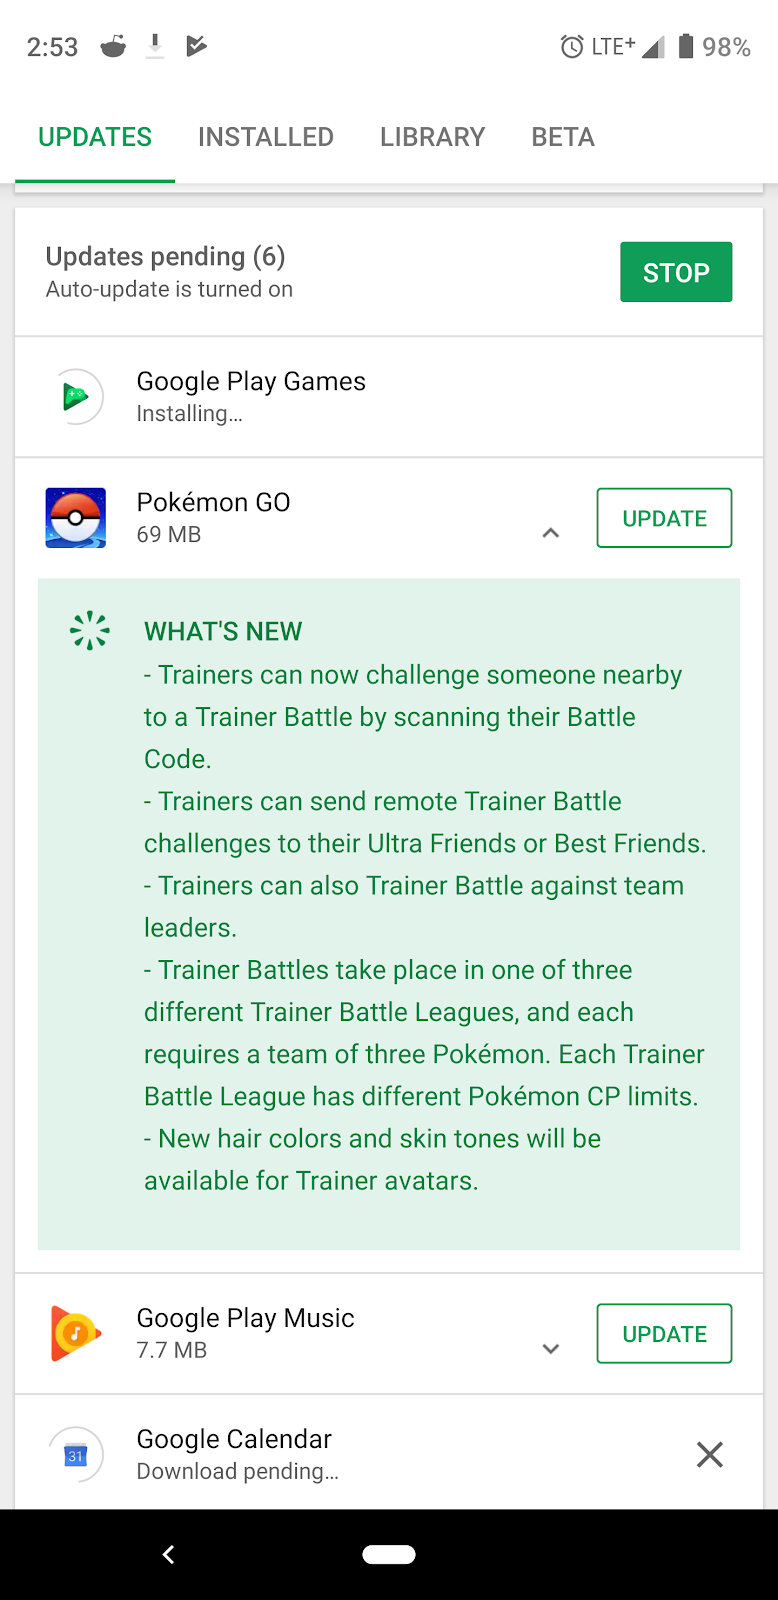 Pokemon go download pending | How to Download the New 'Pokemon Go